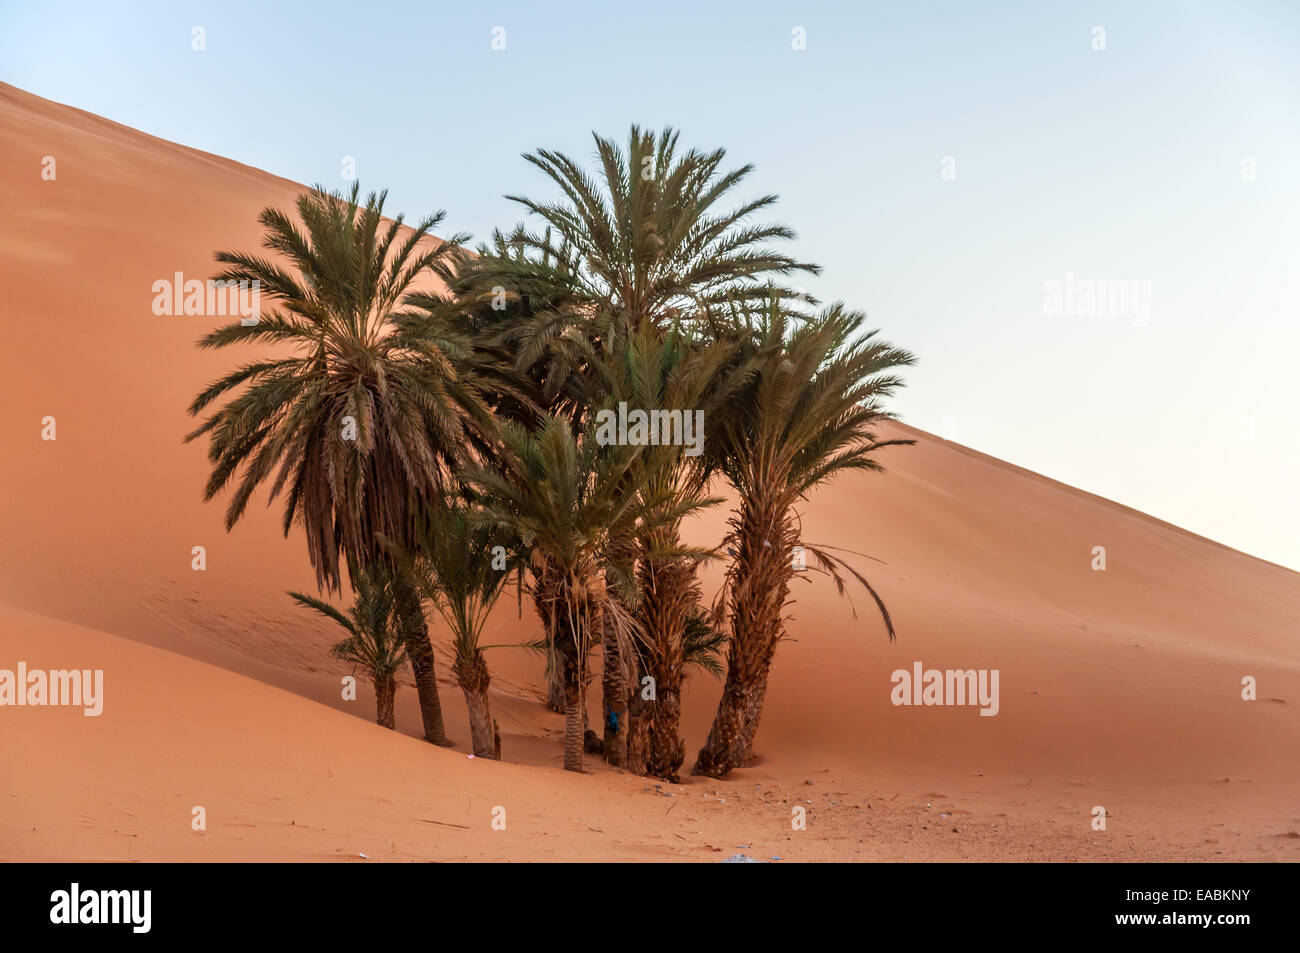 Desert dating